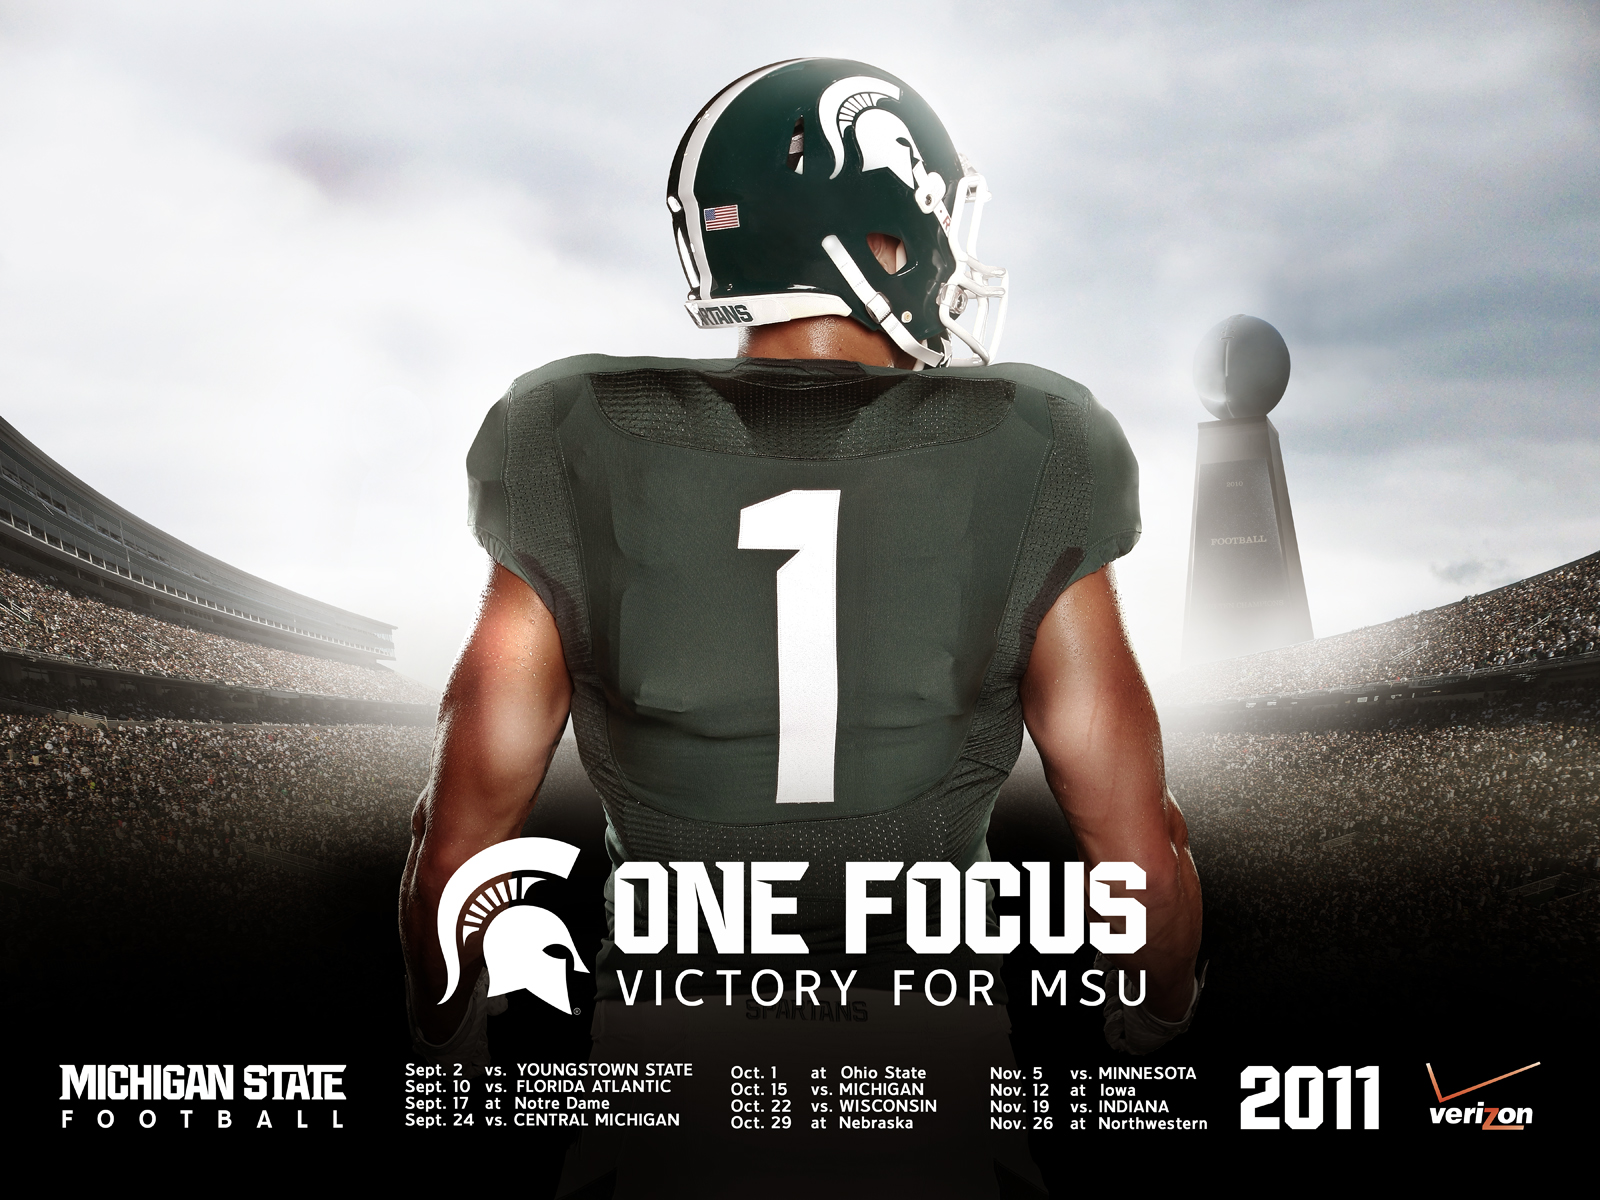 Msu spartans football wallpaper wallpapersafari - Michigan state football backgrounds ...